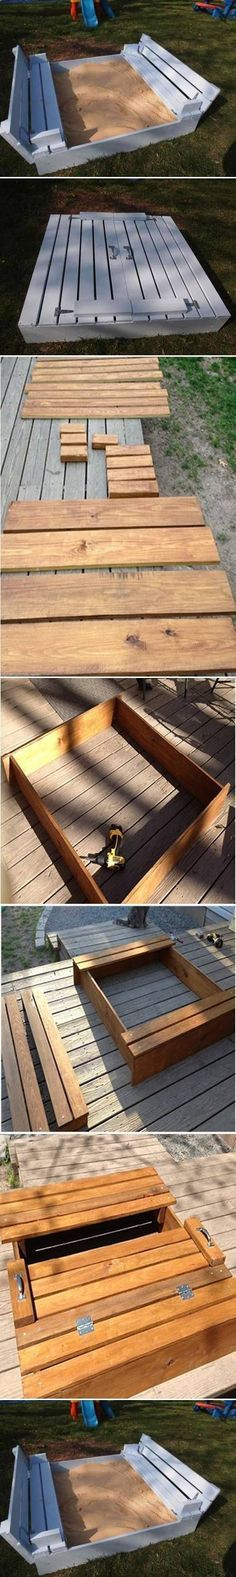 Sandbox Design Ideas diy backyard ideas for kids Diy Sandbox This Is The Only Sandbox Id Feel Comfortable Letting Children Play